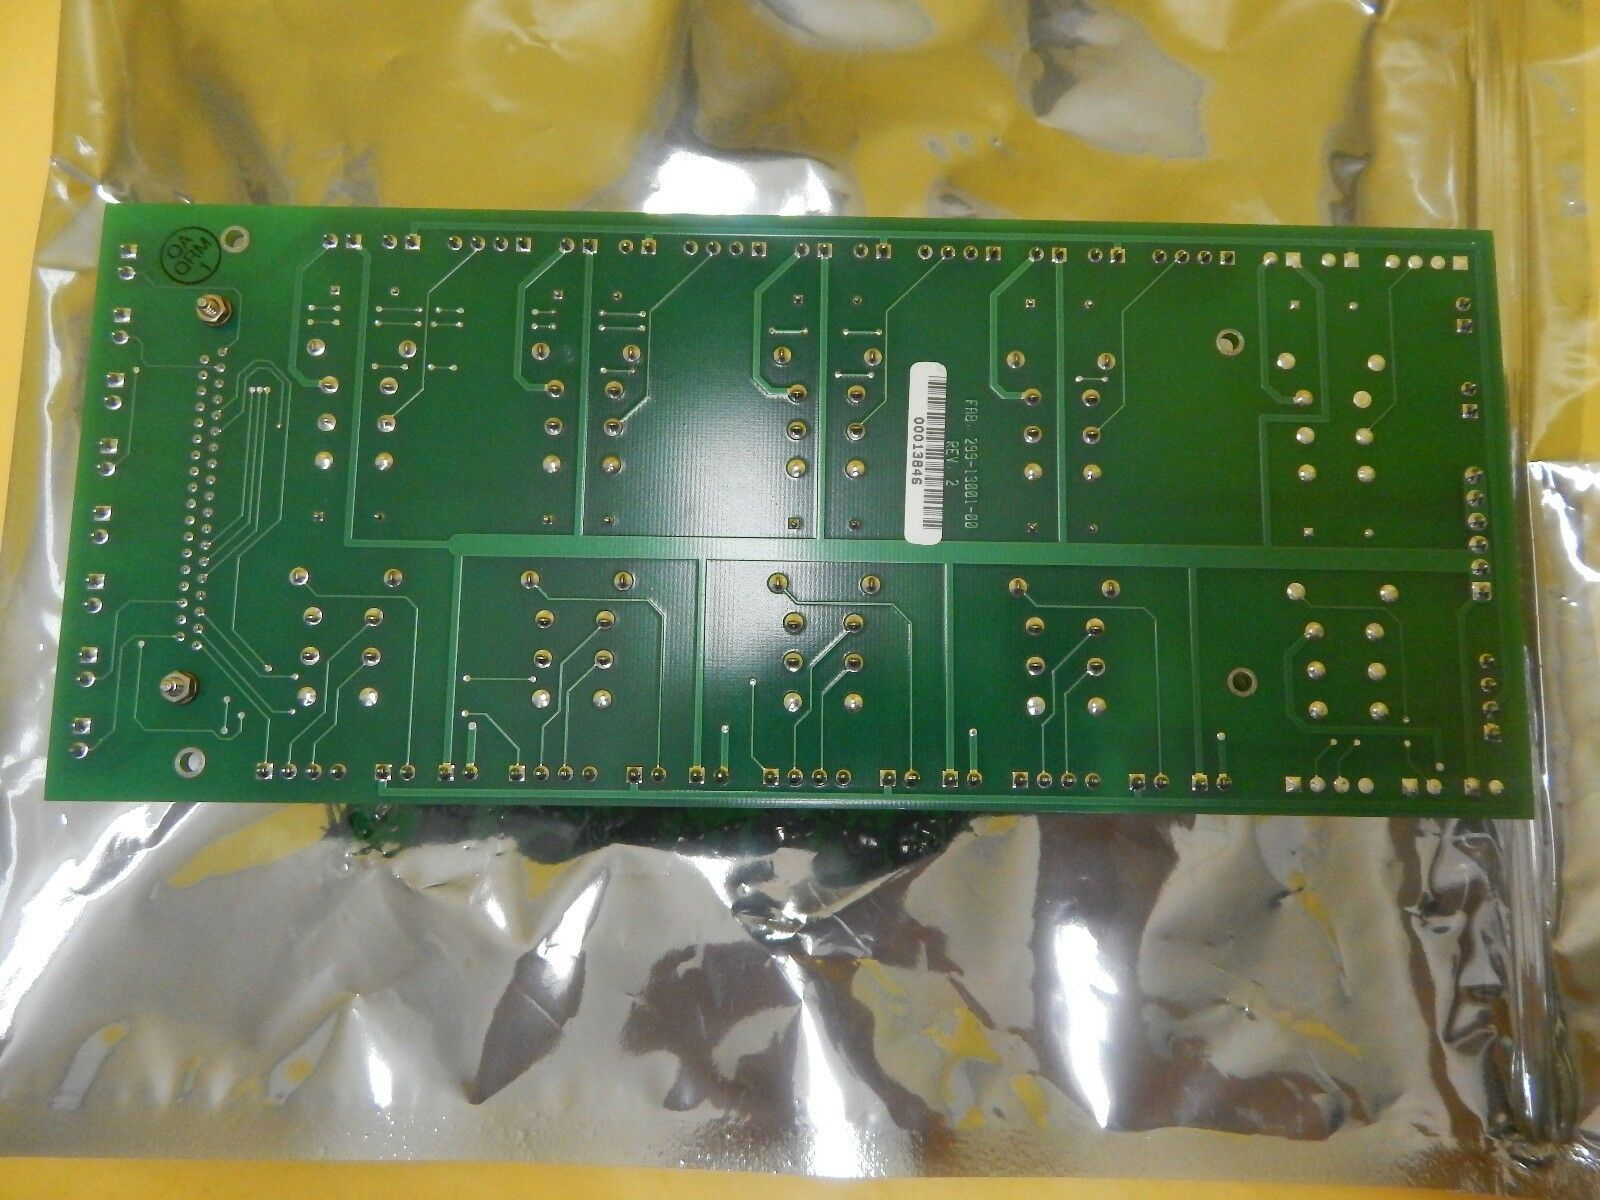 Mattson Technology 299-13000-00 Relay PCB Board 299-13001-00 Used Working